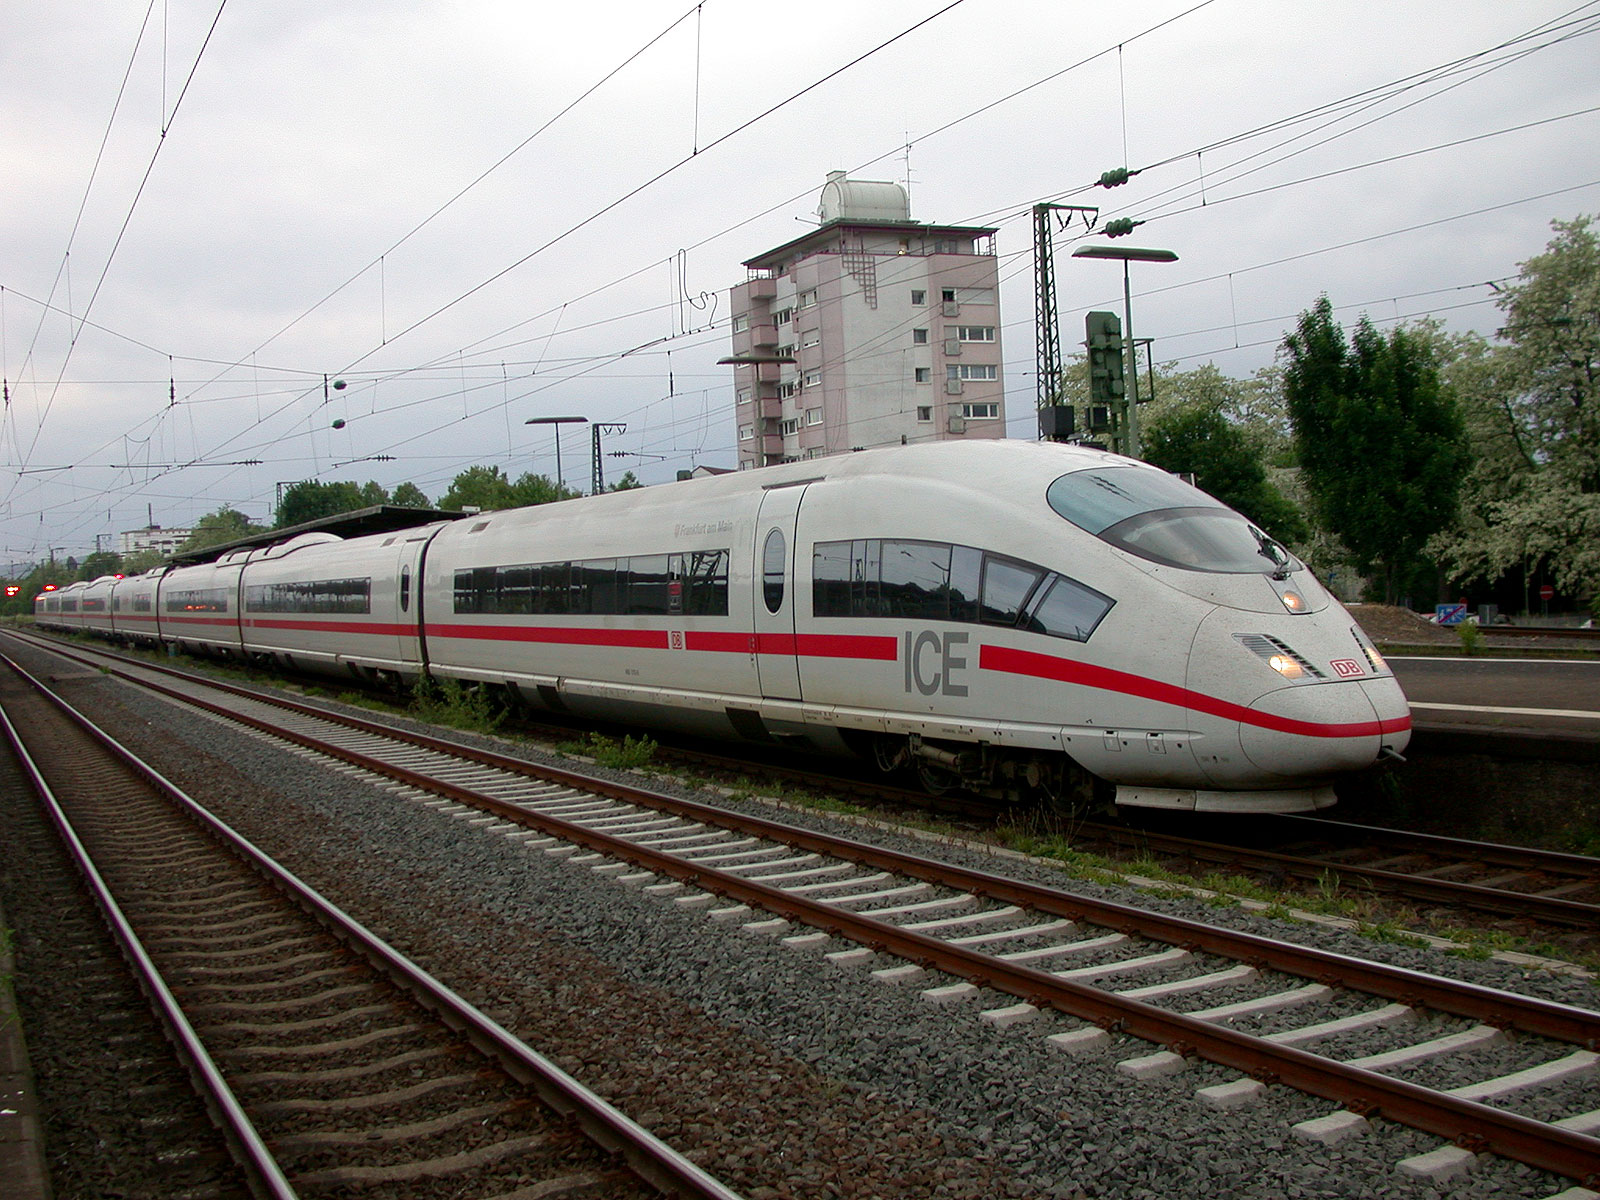 A German bullet train: 180mph and plenty of restrooms, writes Zocalo. Photo: Wikimedia.